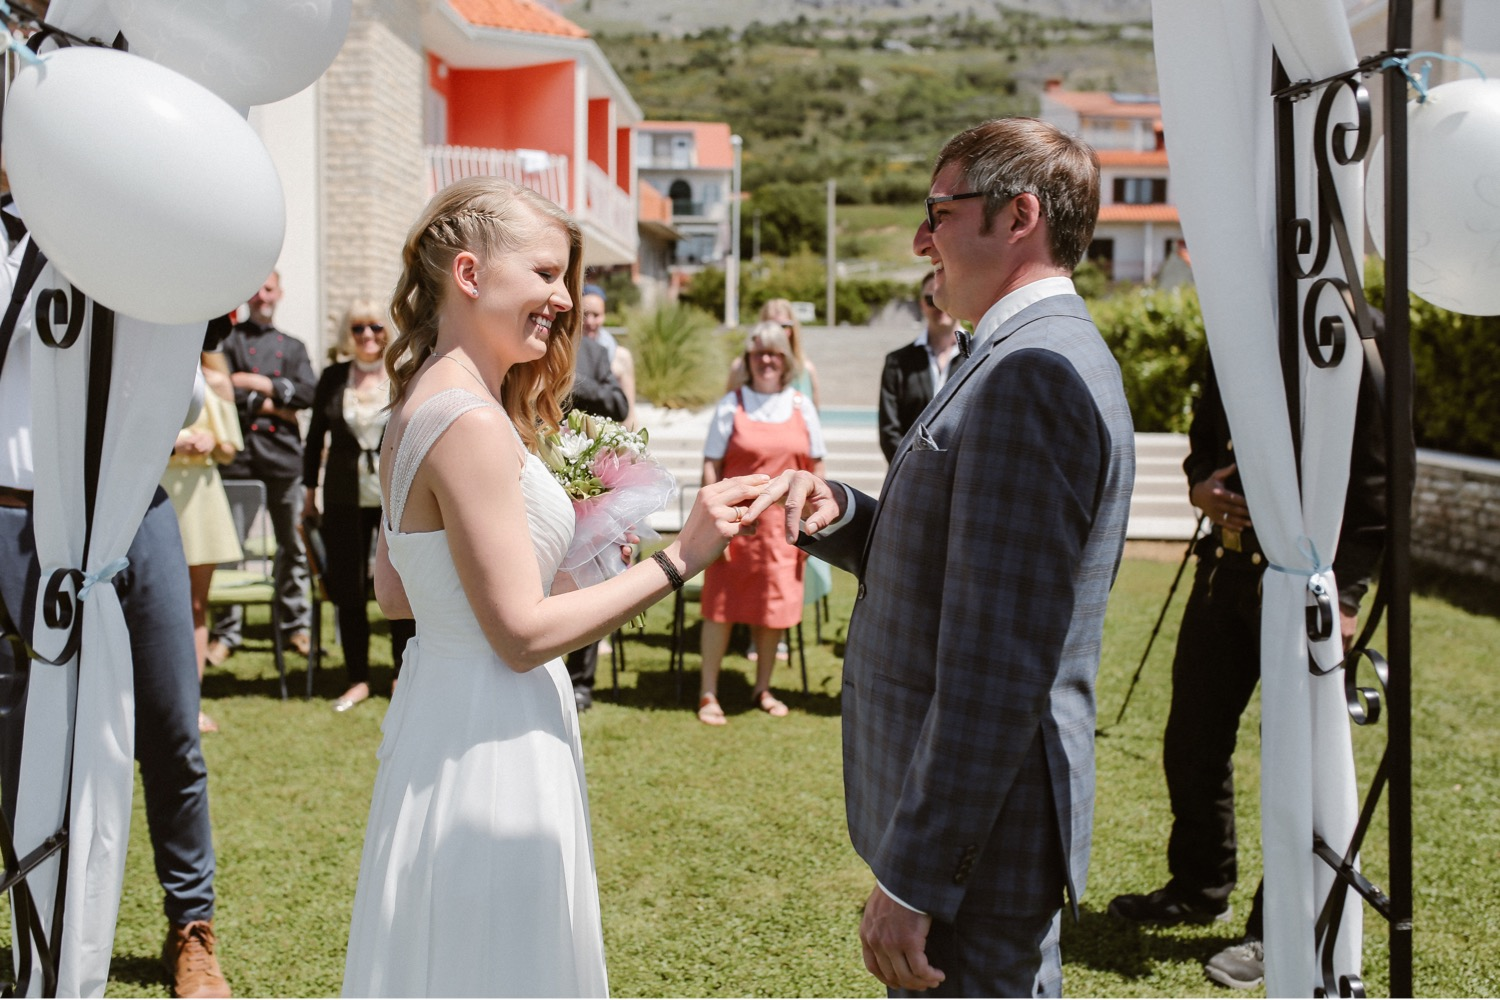 Croatia beach elopement hilke thomas love and ventures photography 27 | Croatia Elopement Photographer and Videographer